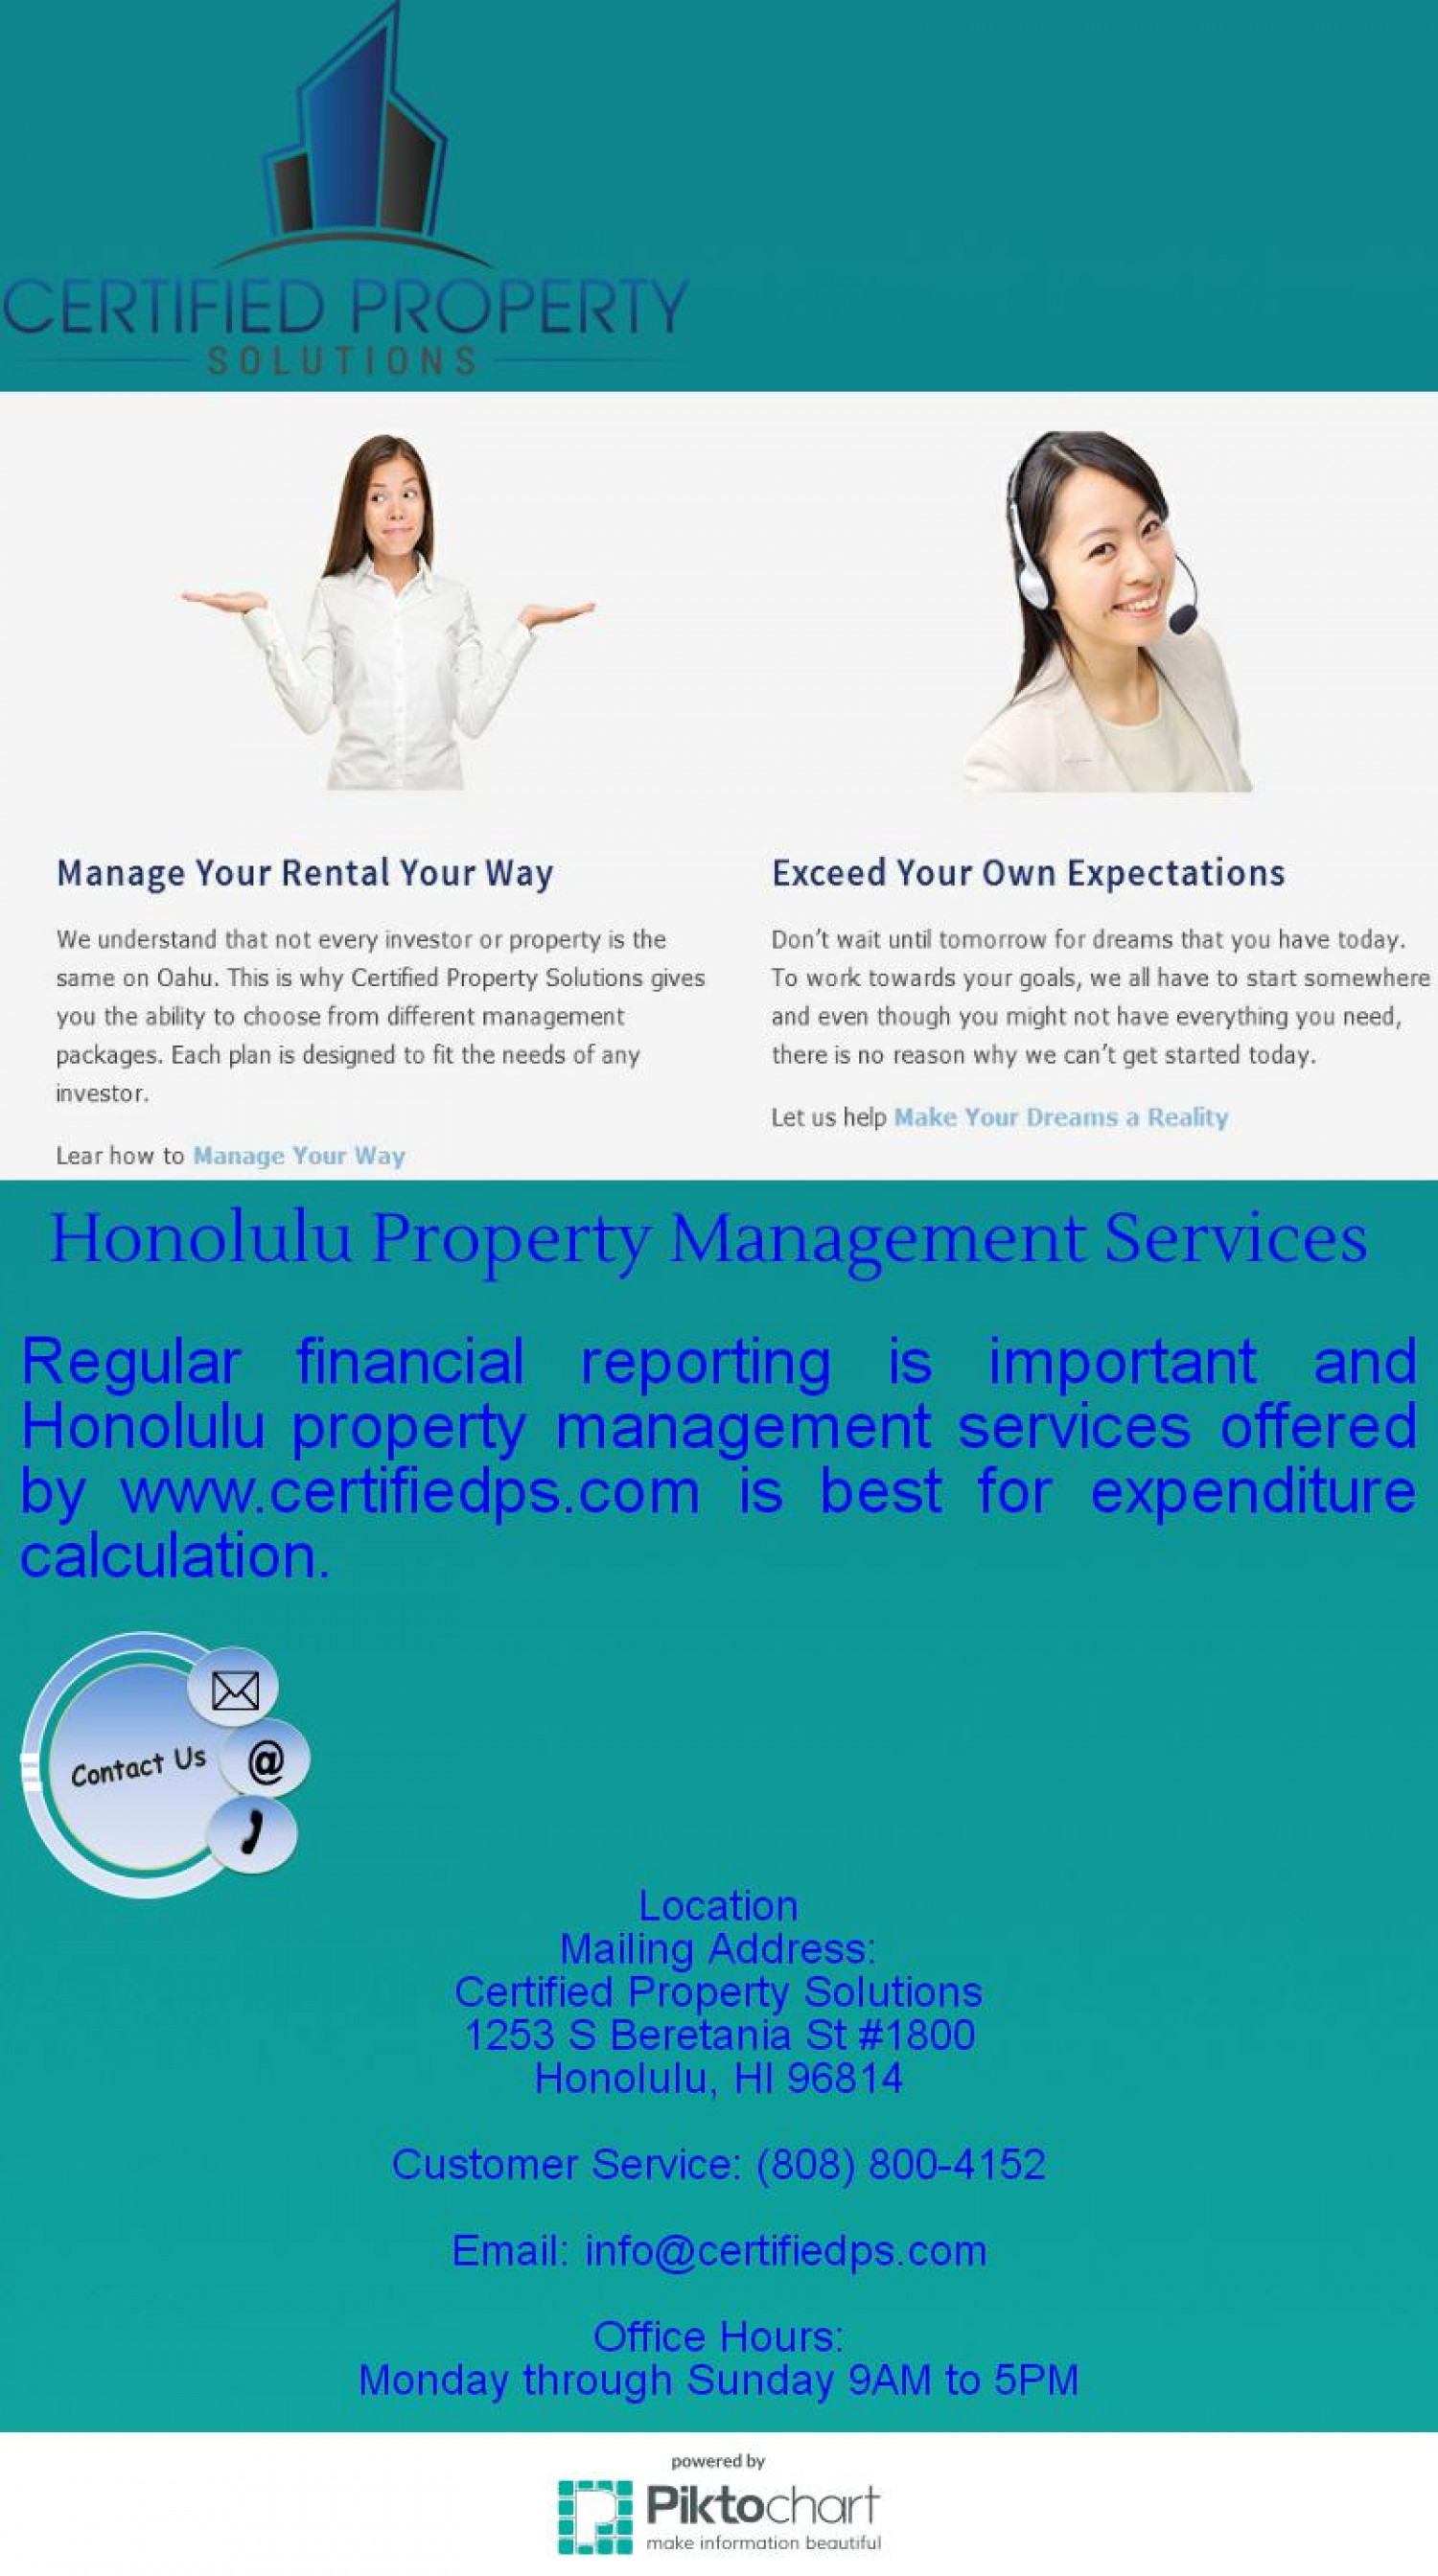 Honolulu Property Management Services - www.certifiedps.com Infographic